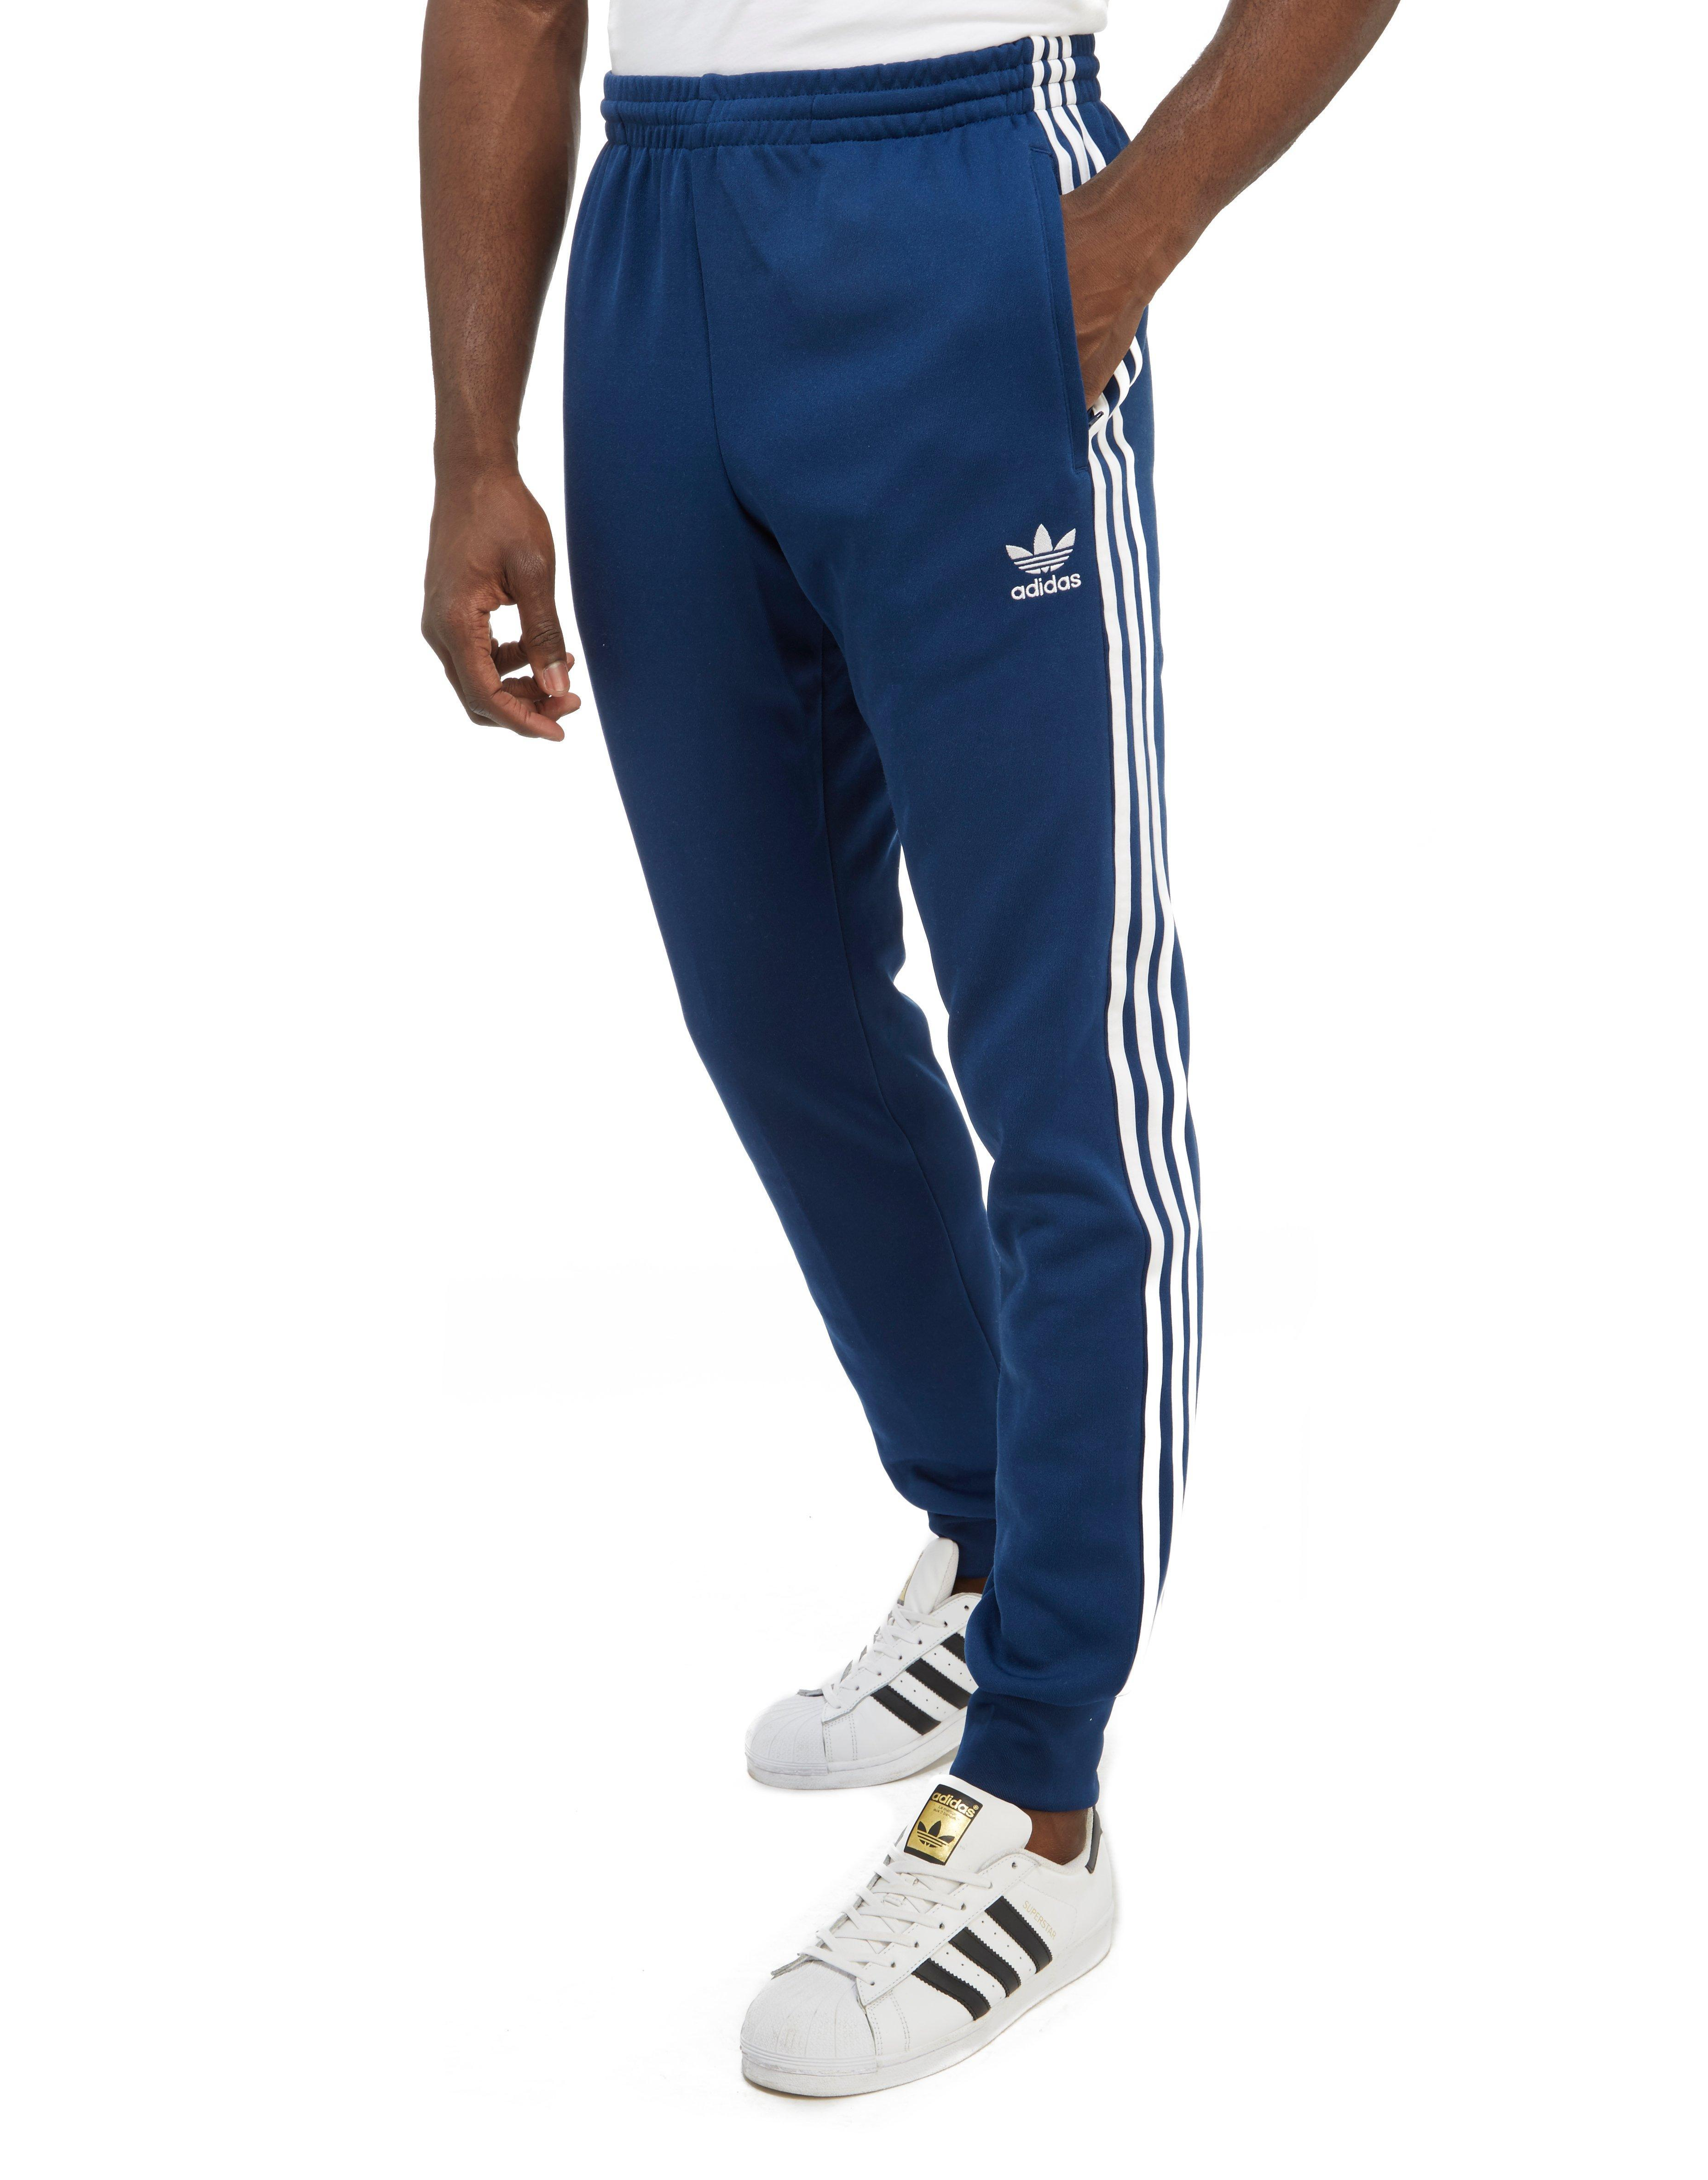 finest selection 94ae6 db567 adidas Originals 3-stripes Superstar Track Pants in Blue for Men - Lyst